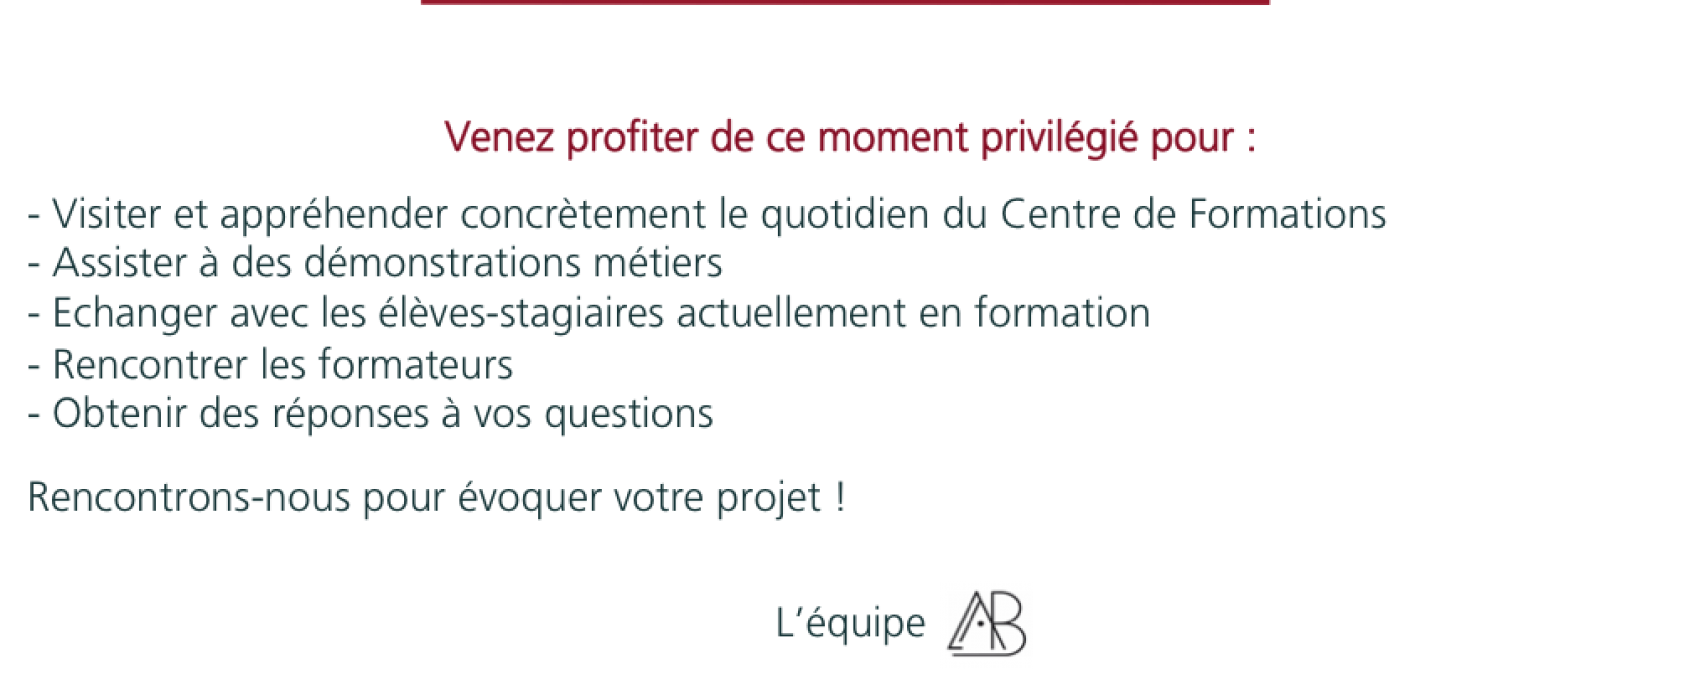 TEXTE INVITATION